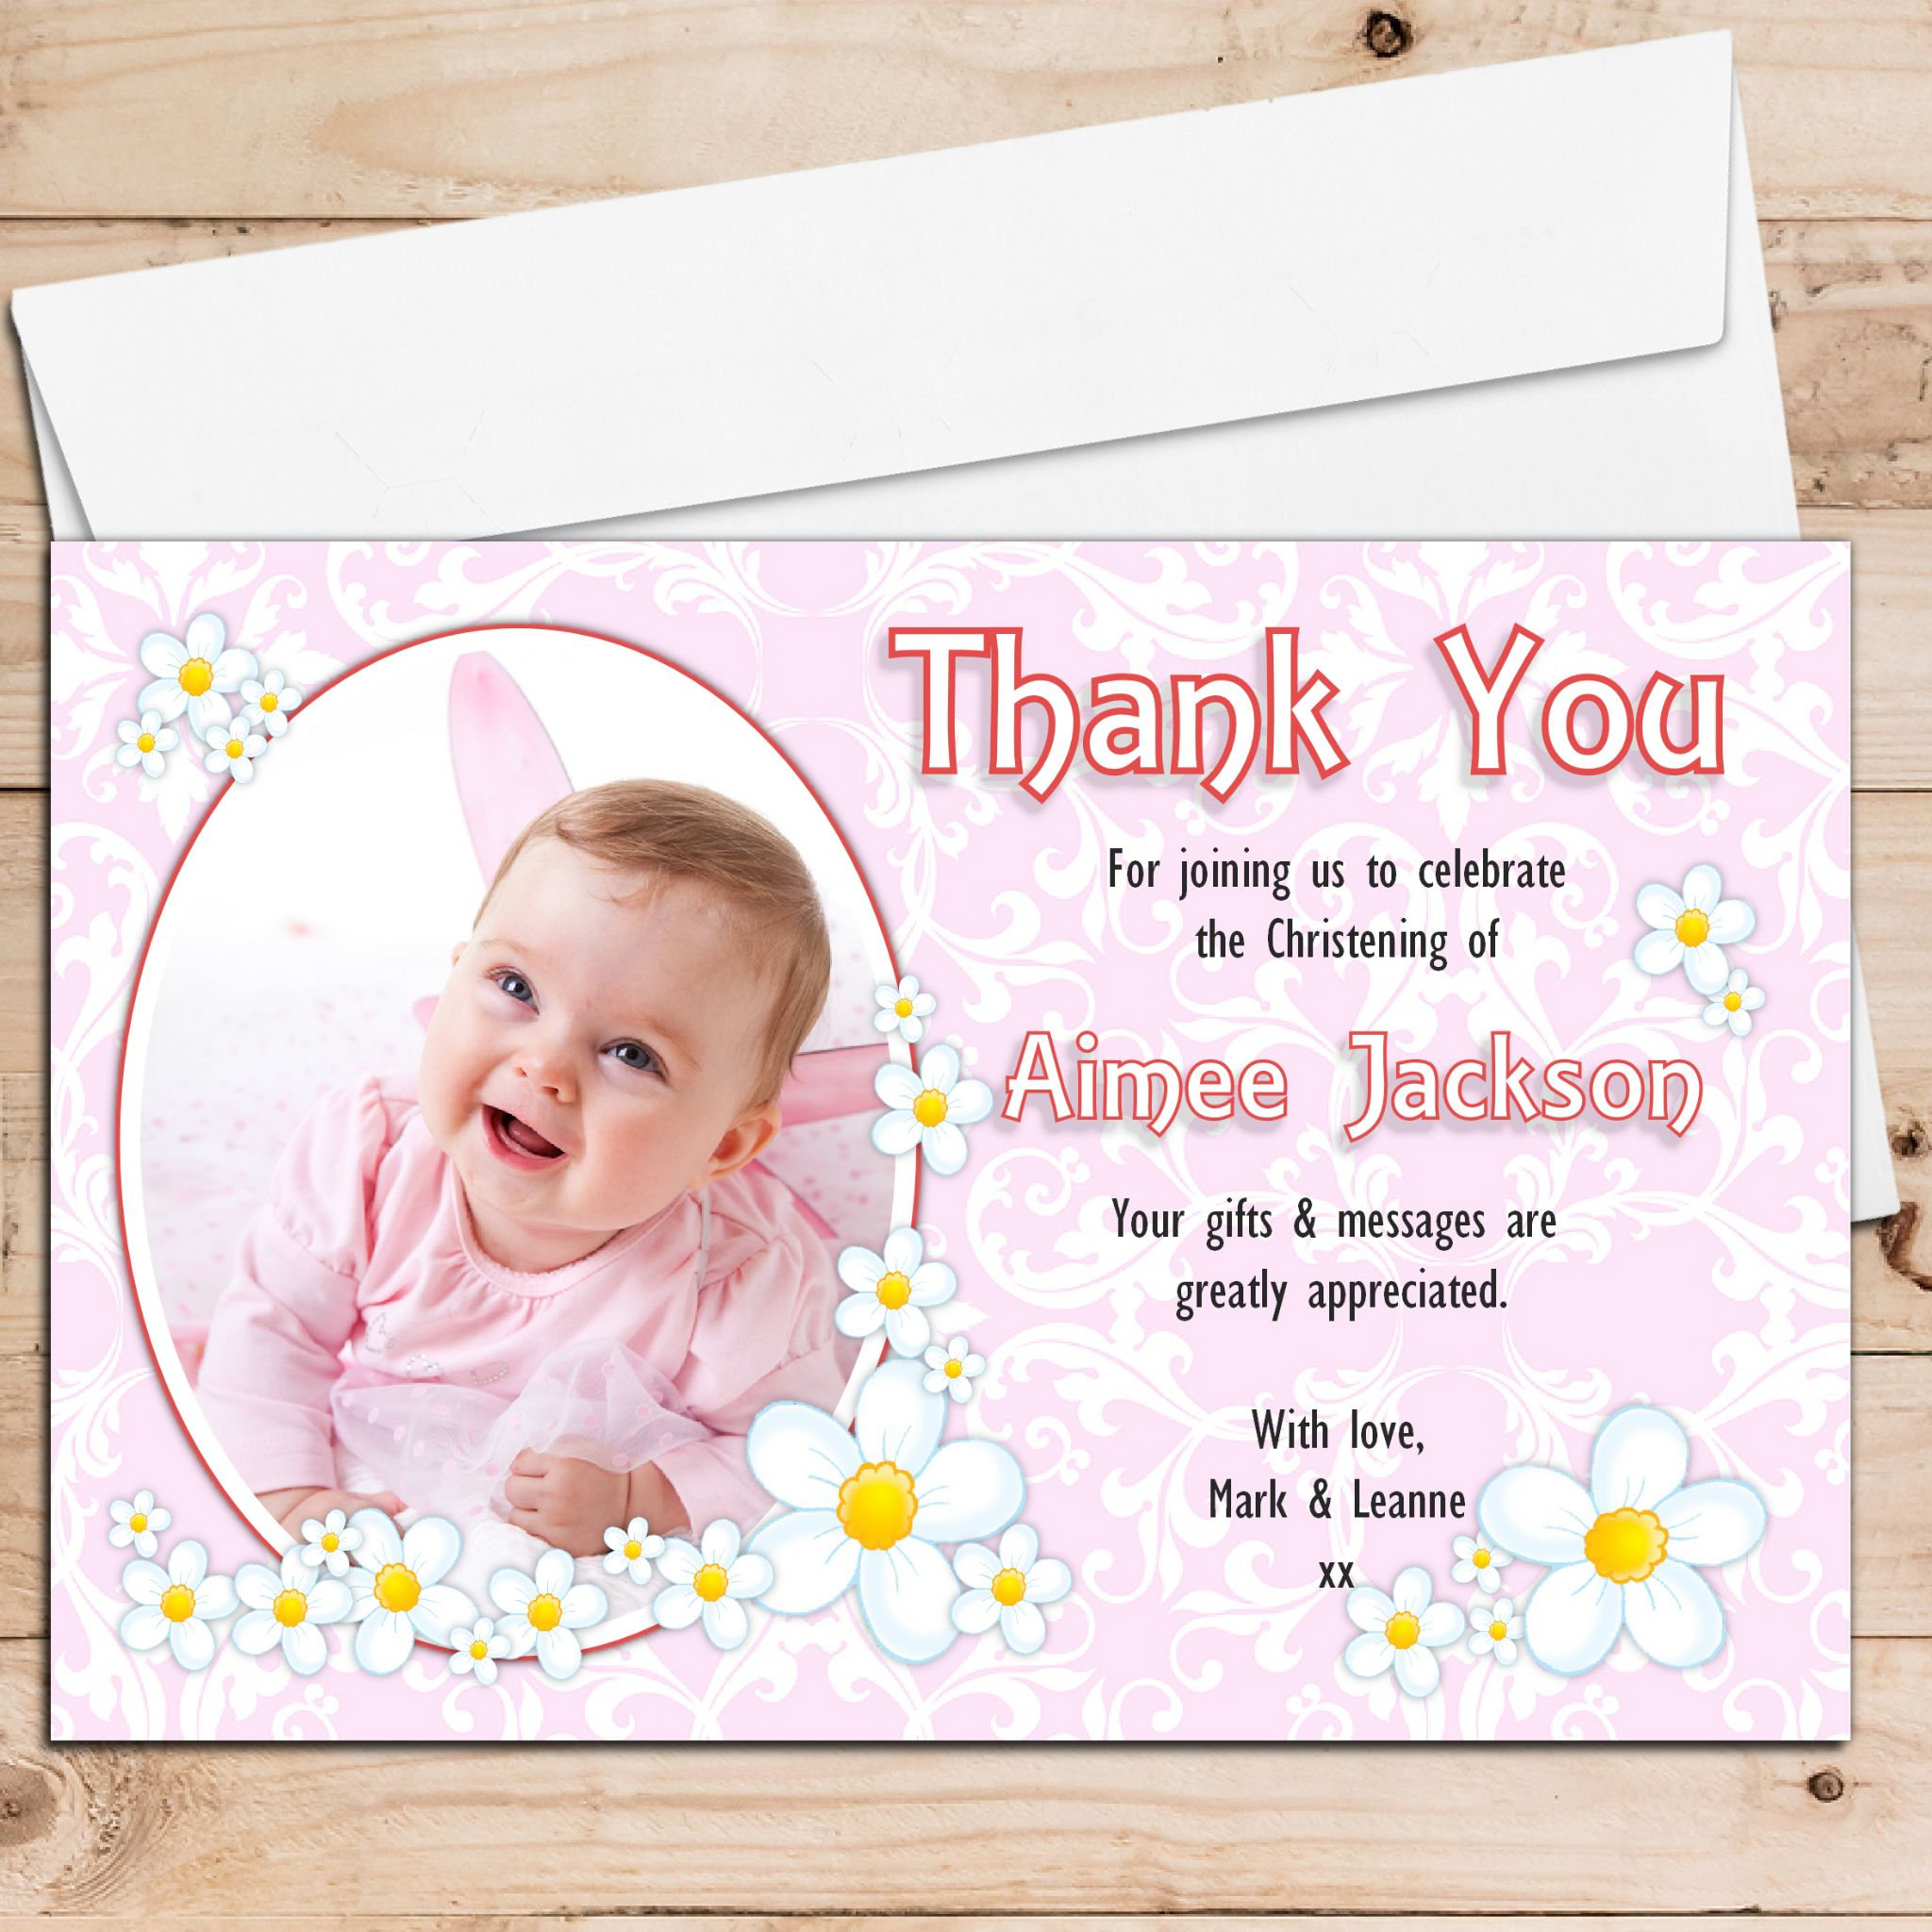 Thank You Note For Flowers Birthday Flowers Healthy